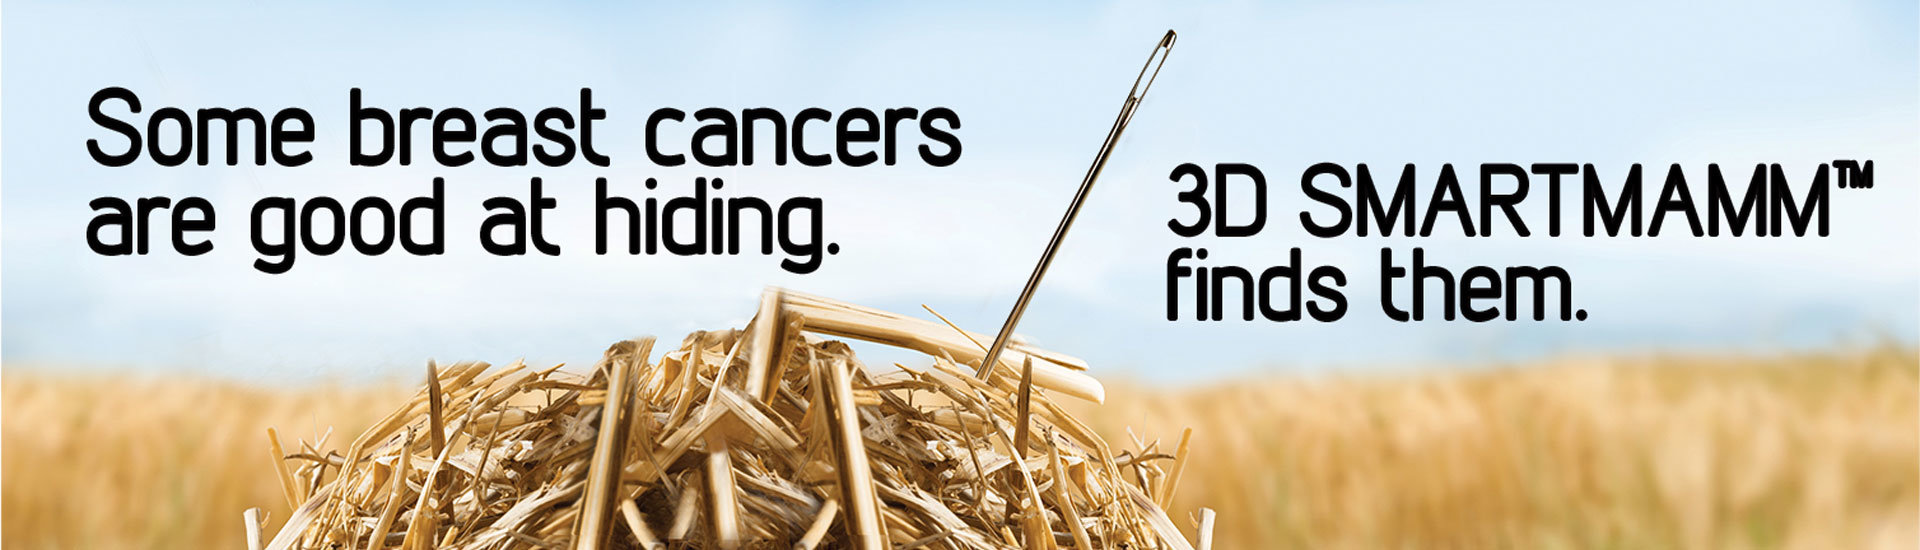 Breast Cancer Needle in a Haystack